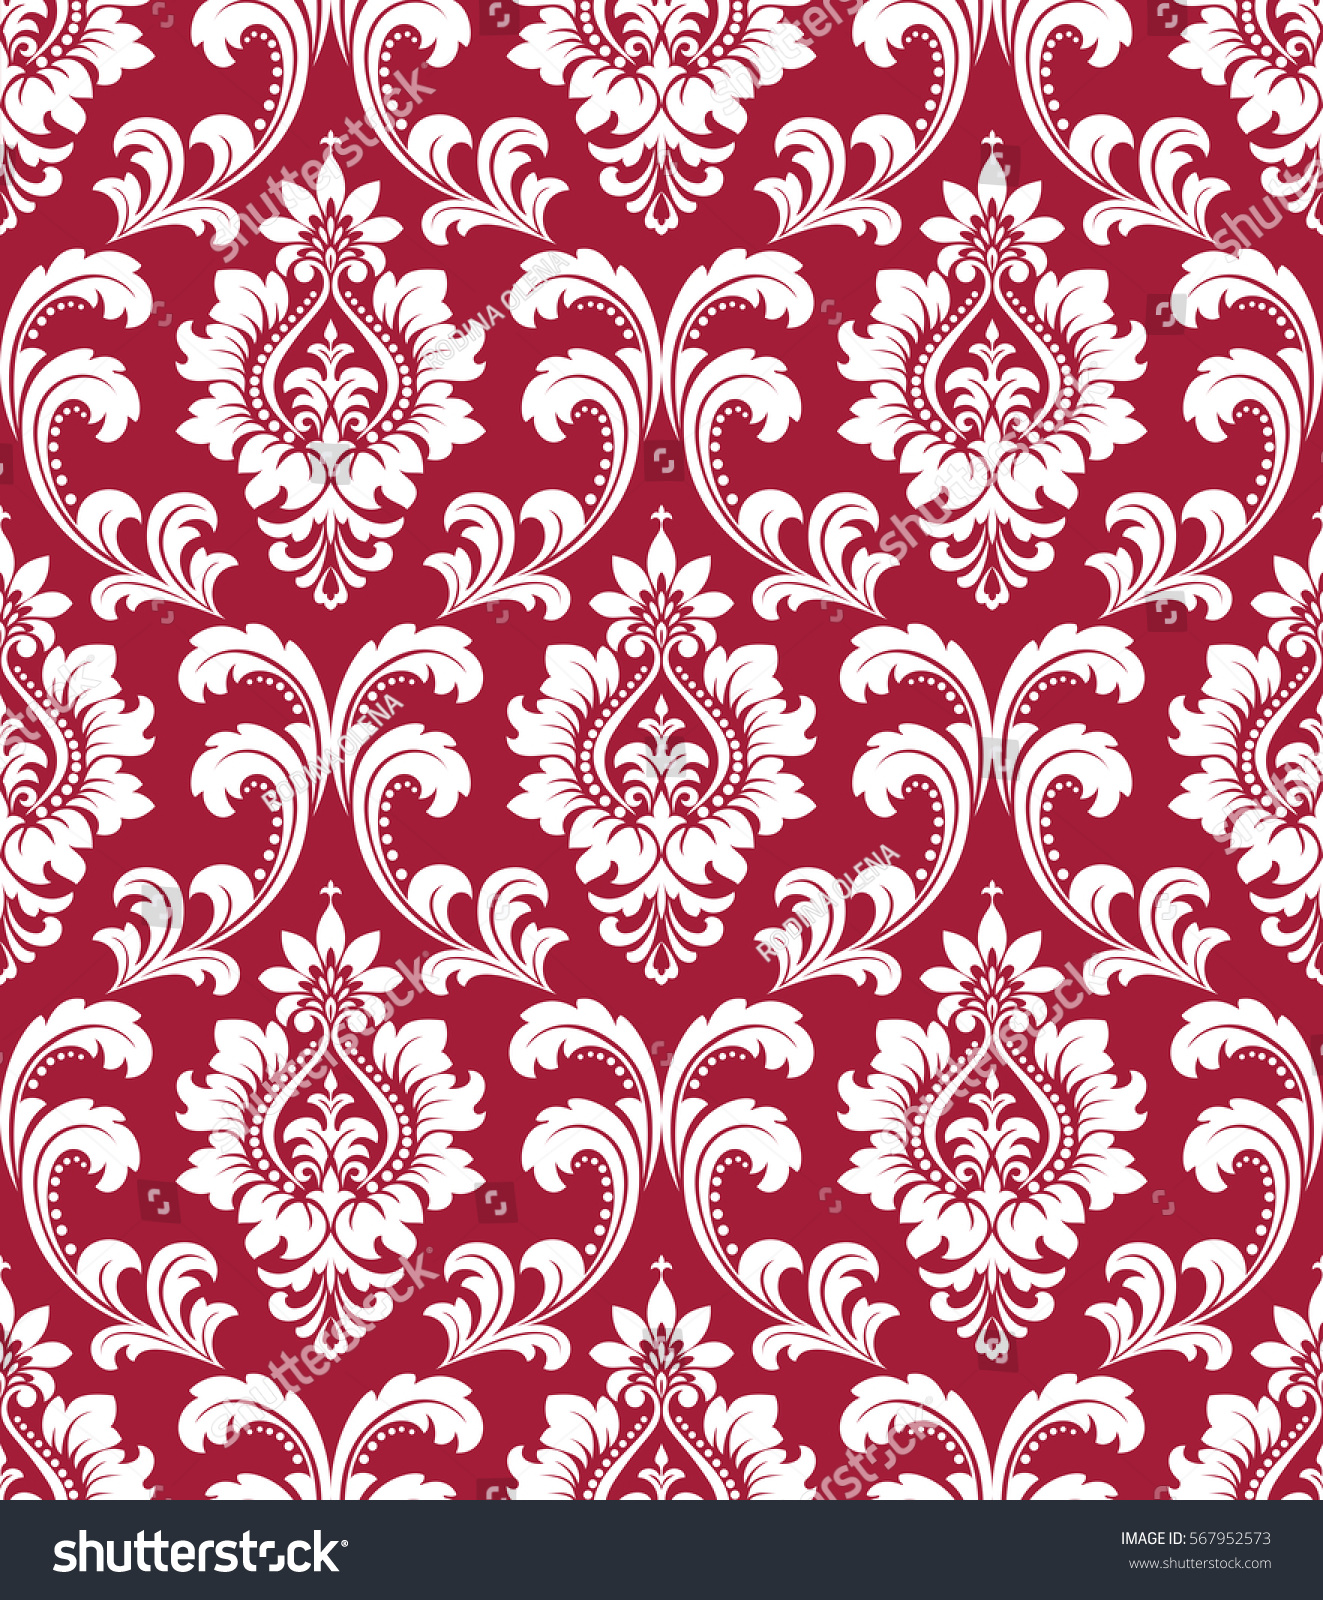 Red And White Patterned Wallpaper: Floral Pattern Wallpaper Baroque Damask Seamless Stock